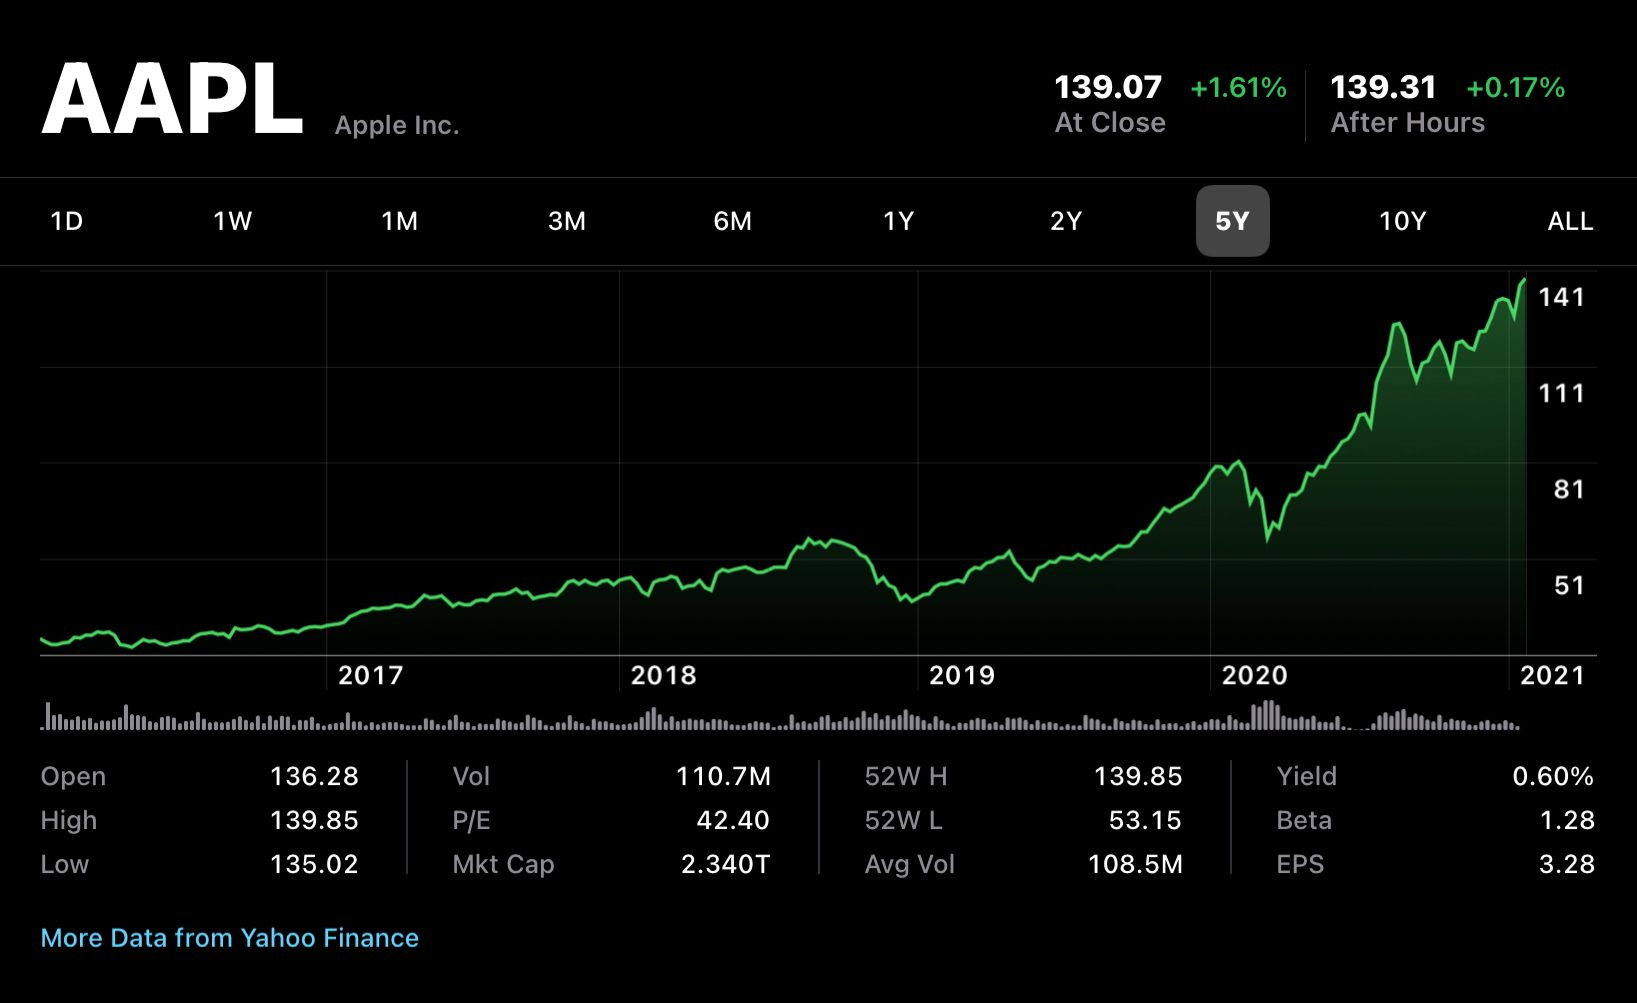 AAPL all-time high